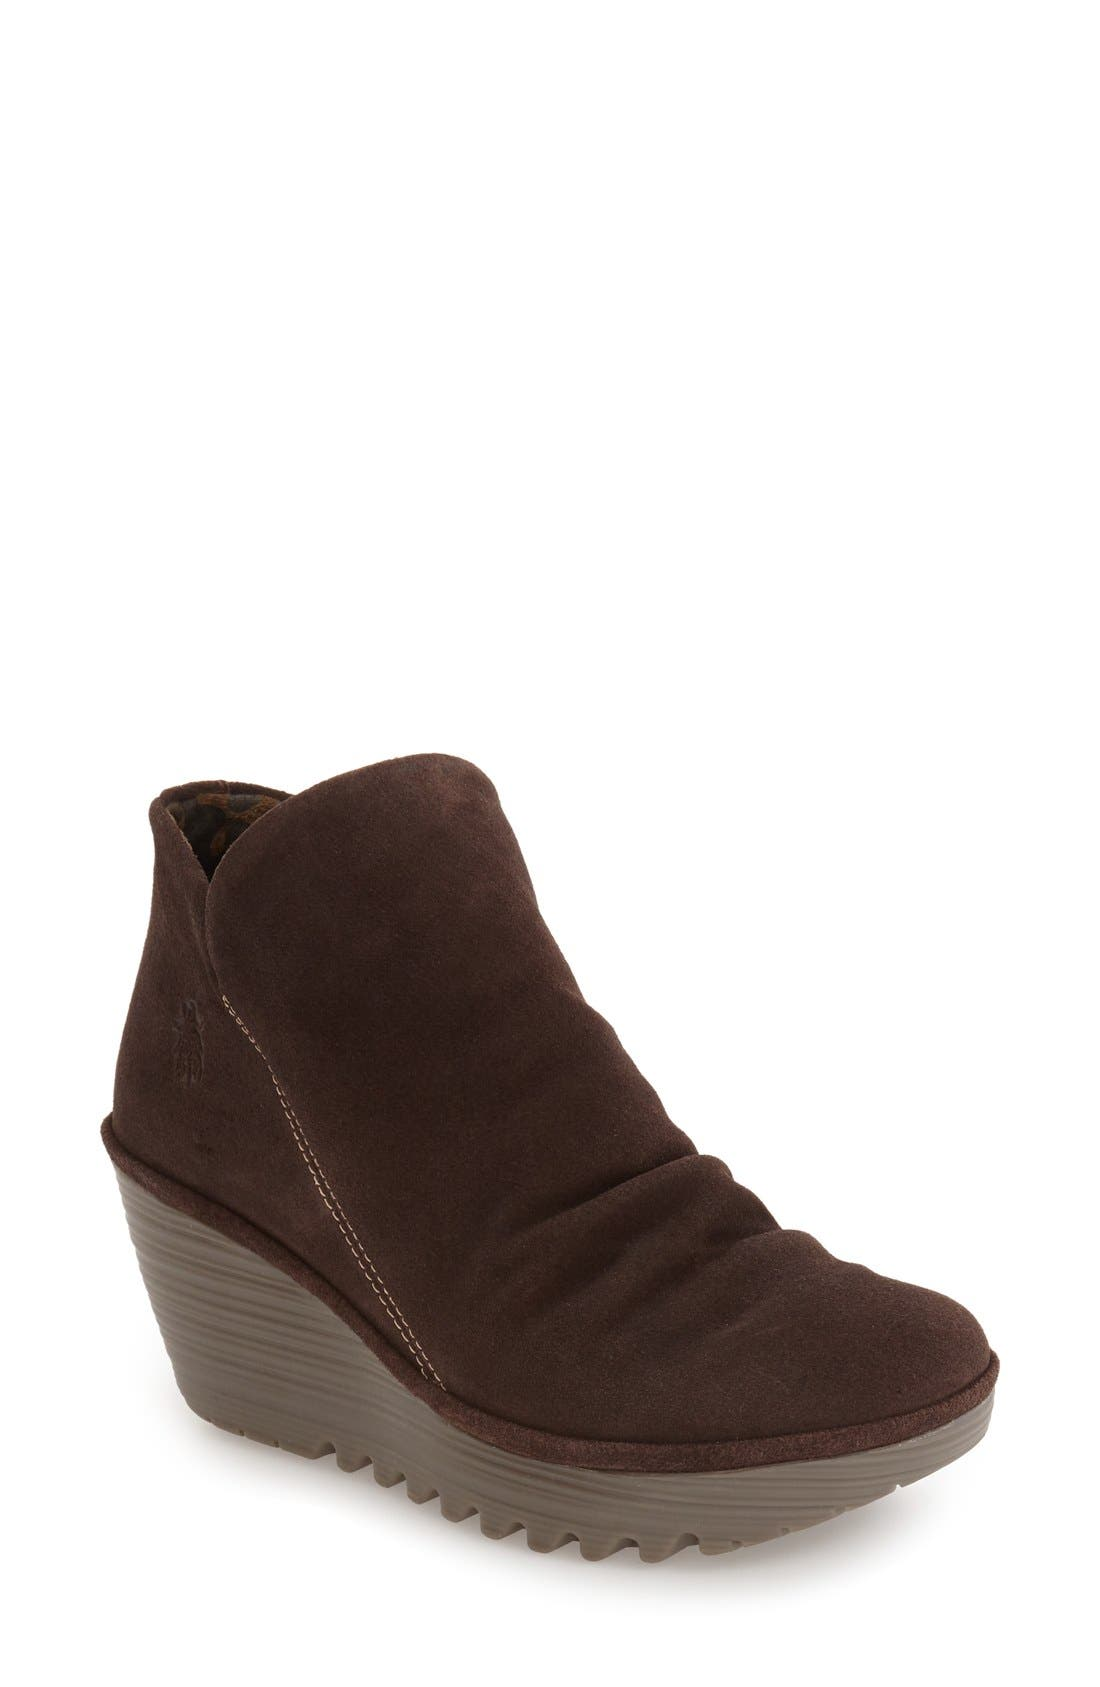 'Yip' Wedge Bootie,                             Main thumbnail 1, color,                             Expresso Oil Suede